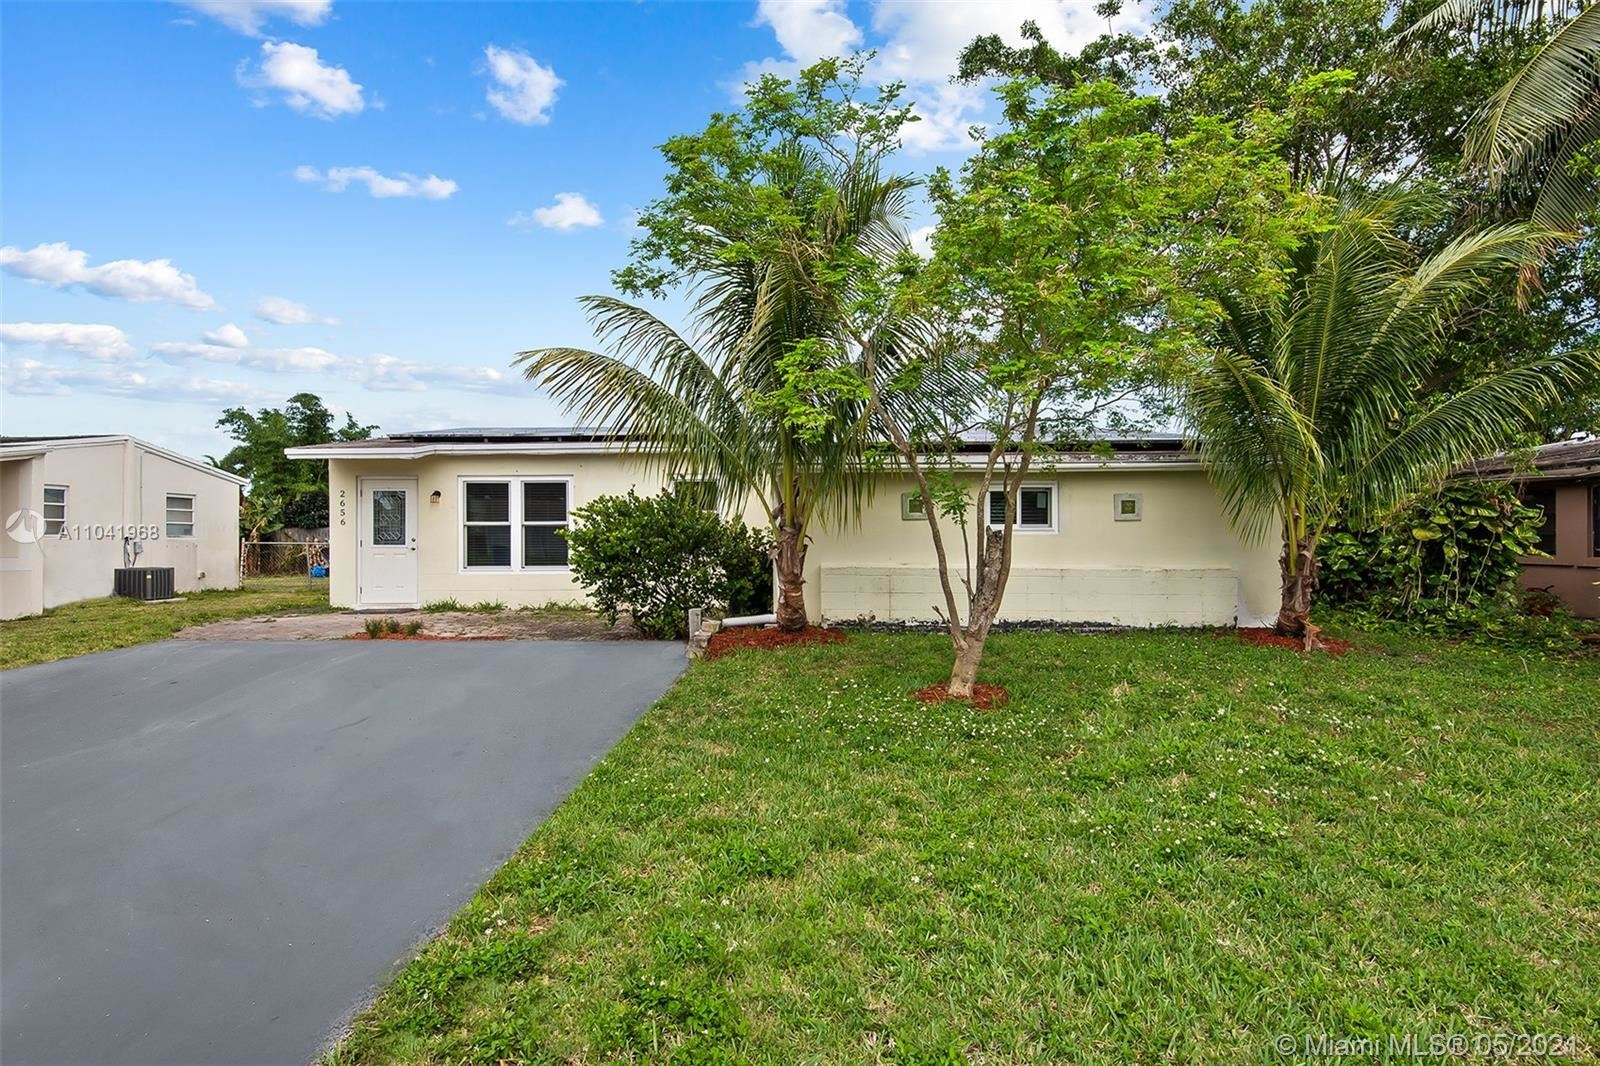 2656 NW 63rd Ave, Margate, FL 33063 - #: A11041968